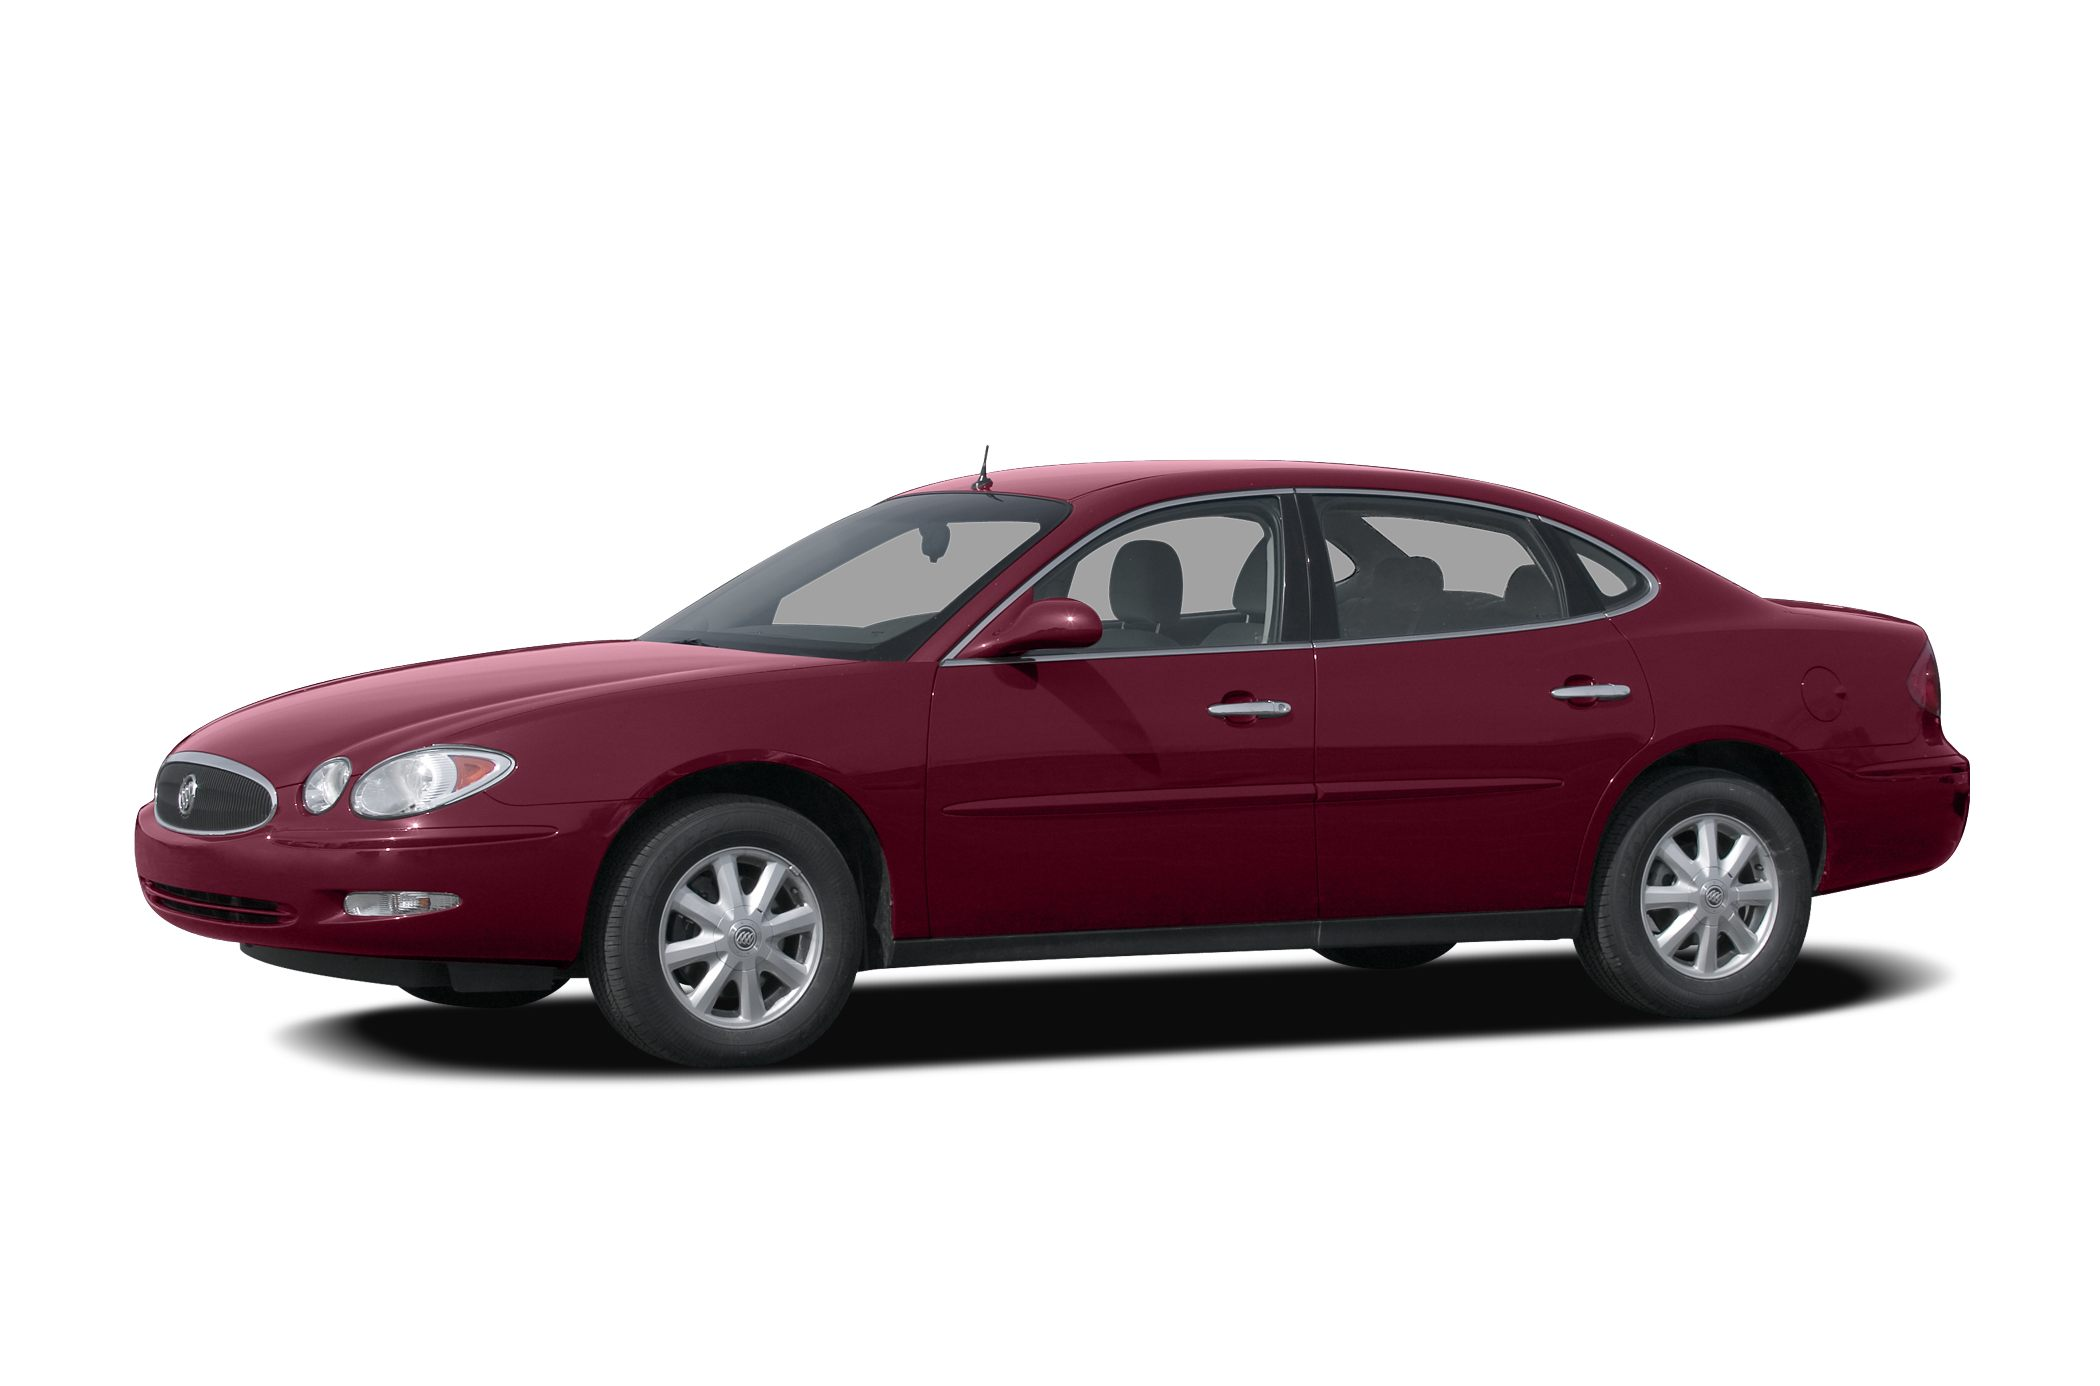 2008 Buick LaCrosse CXL Sedan for sale in Memphis for $12,990 with 49,447 miles.